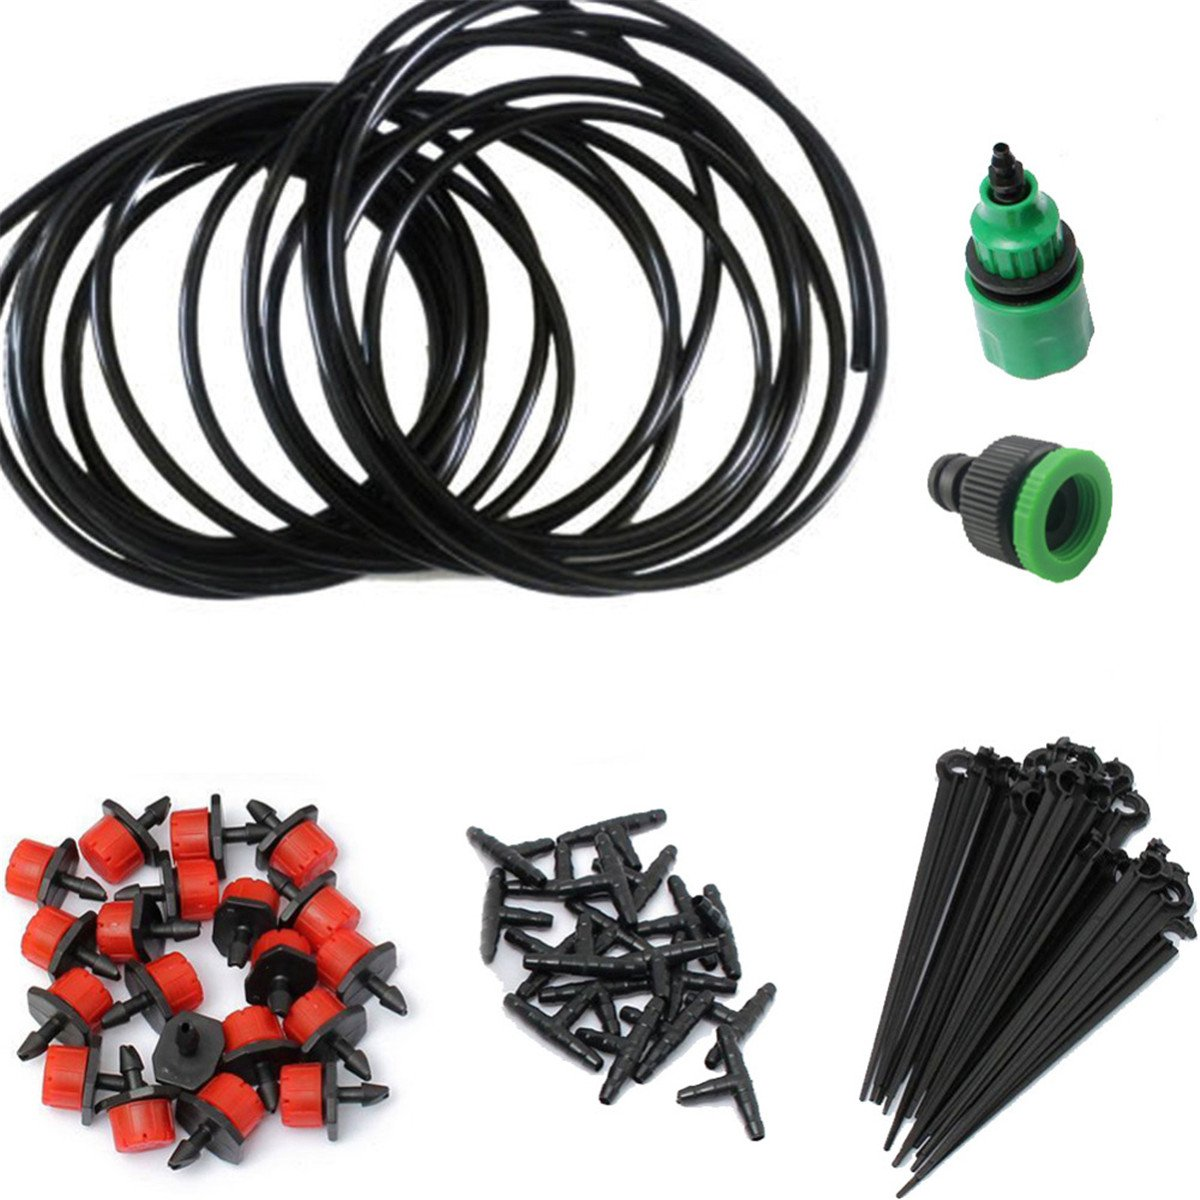 Irrigation Spray for Patio Garden Flower Plants Lycheer lychee Irrigation Watering System 82ft DIY Micro Irrigation Drip System-Tubing Watering Drip Kit